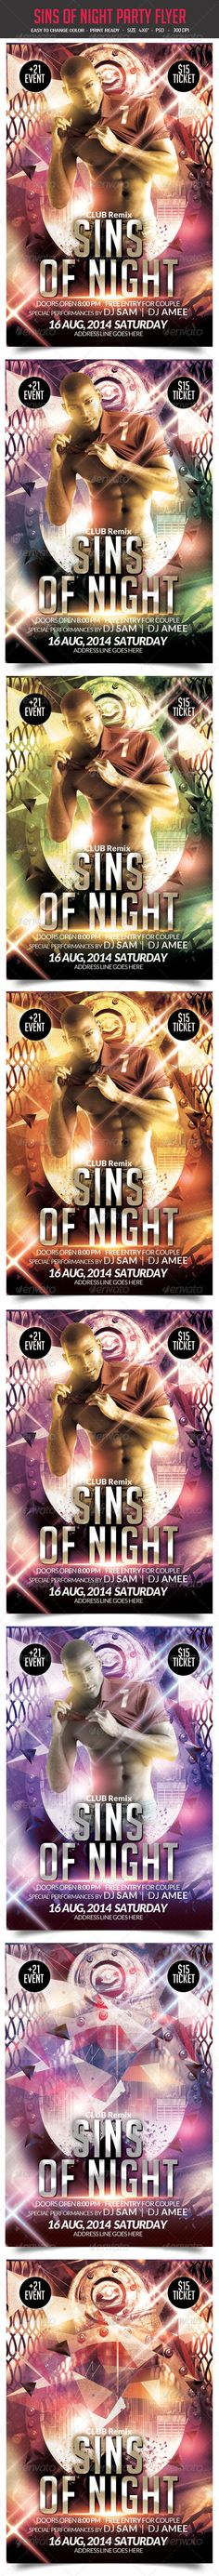 Sins of Night Party Flyer